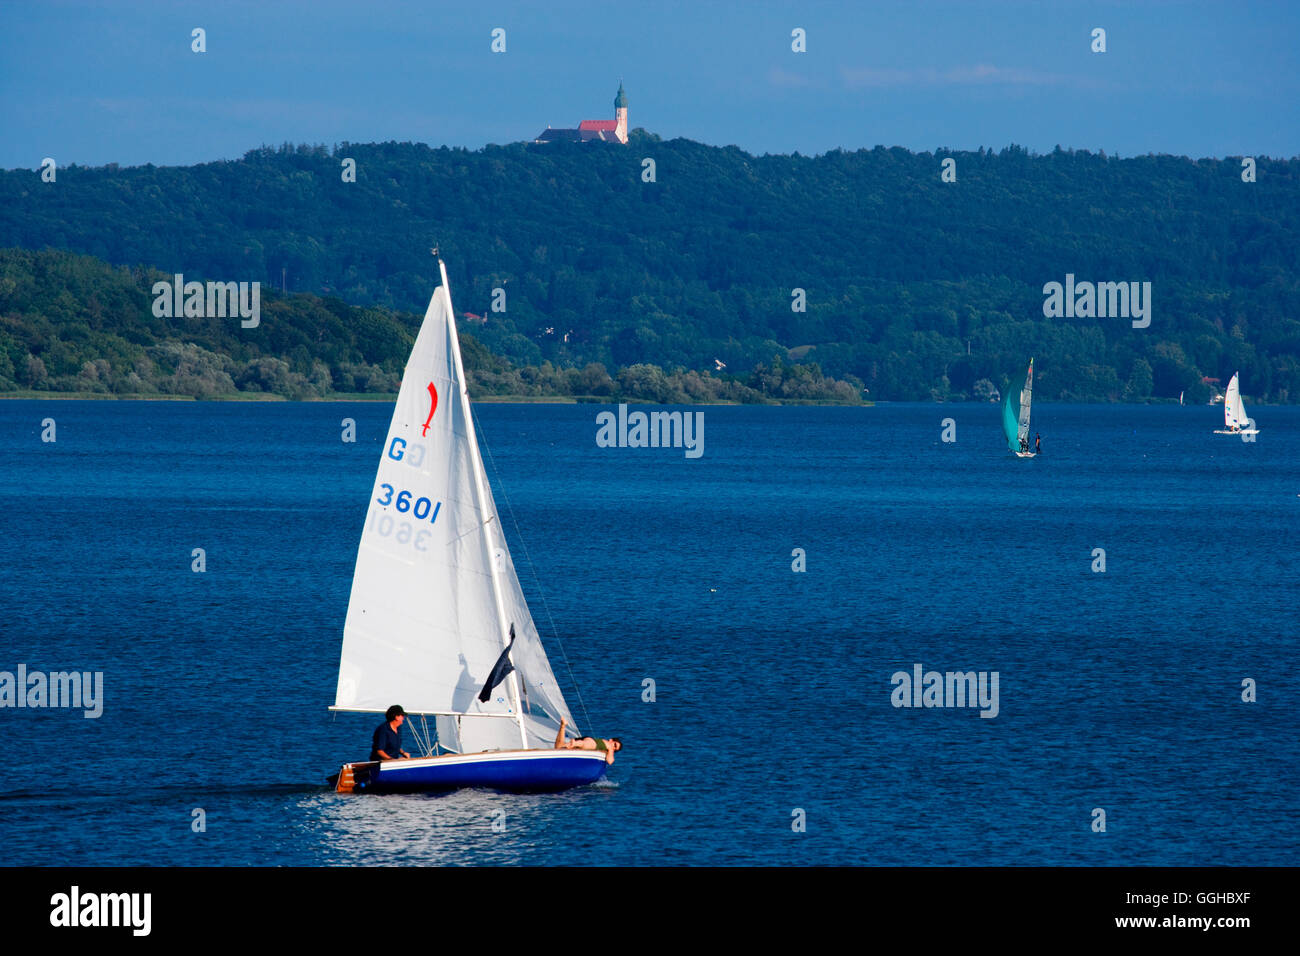 Sailing boat and Andechs monastery in the background, Ammersee, Upper Bavaria, Bavaria, Germany - Stock Image